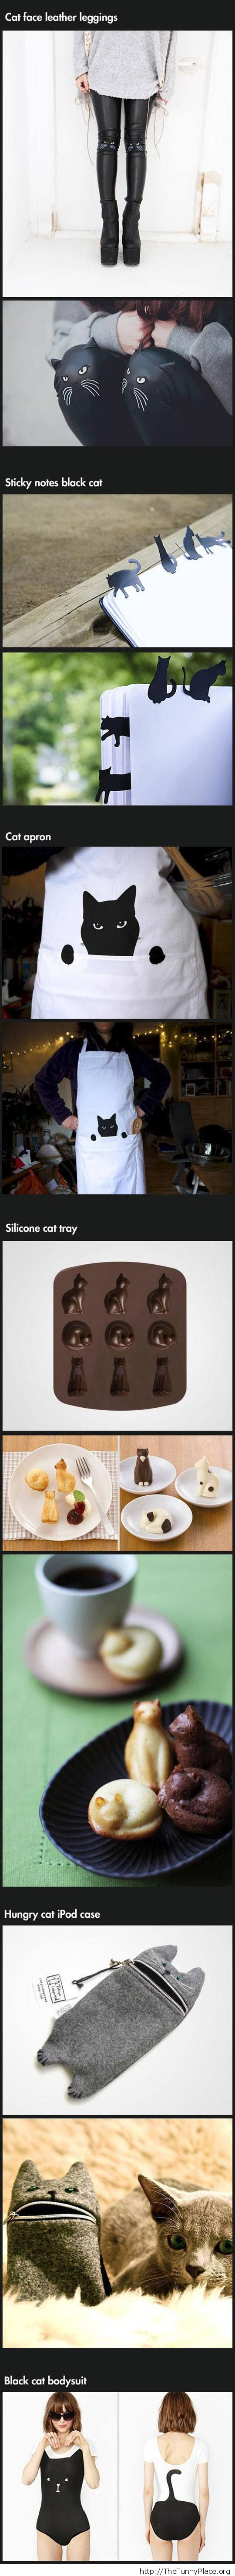 Crazy cat wear for crazy cat people